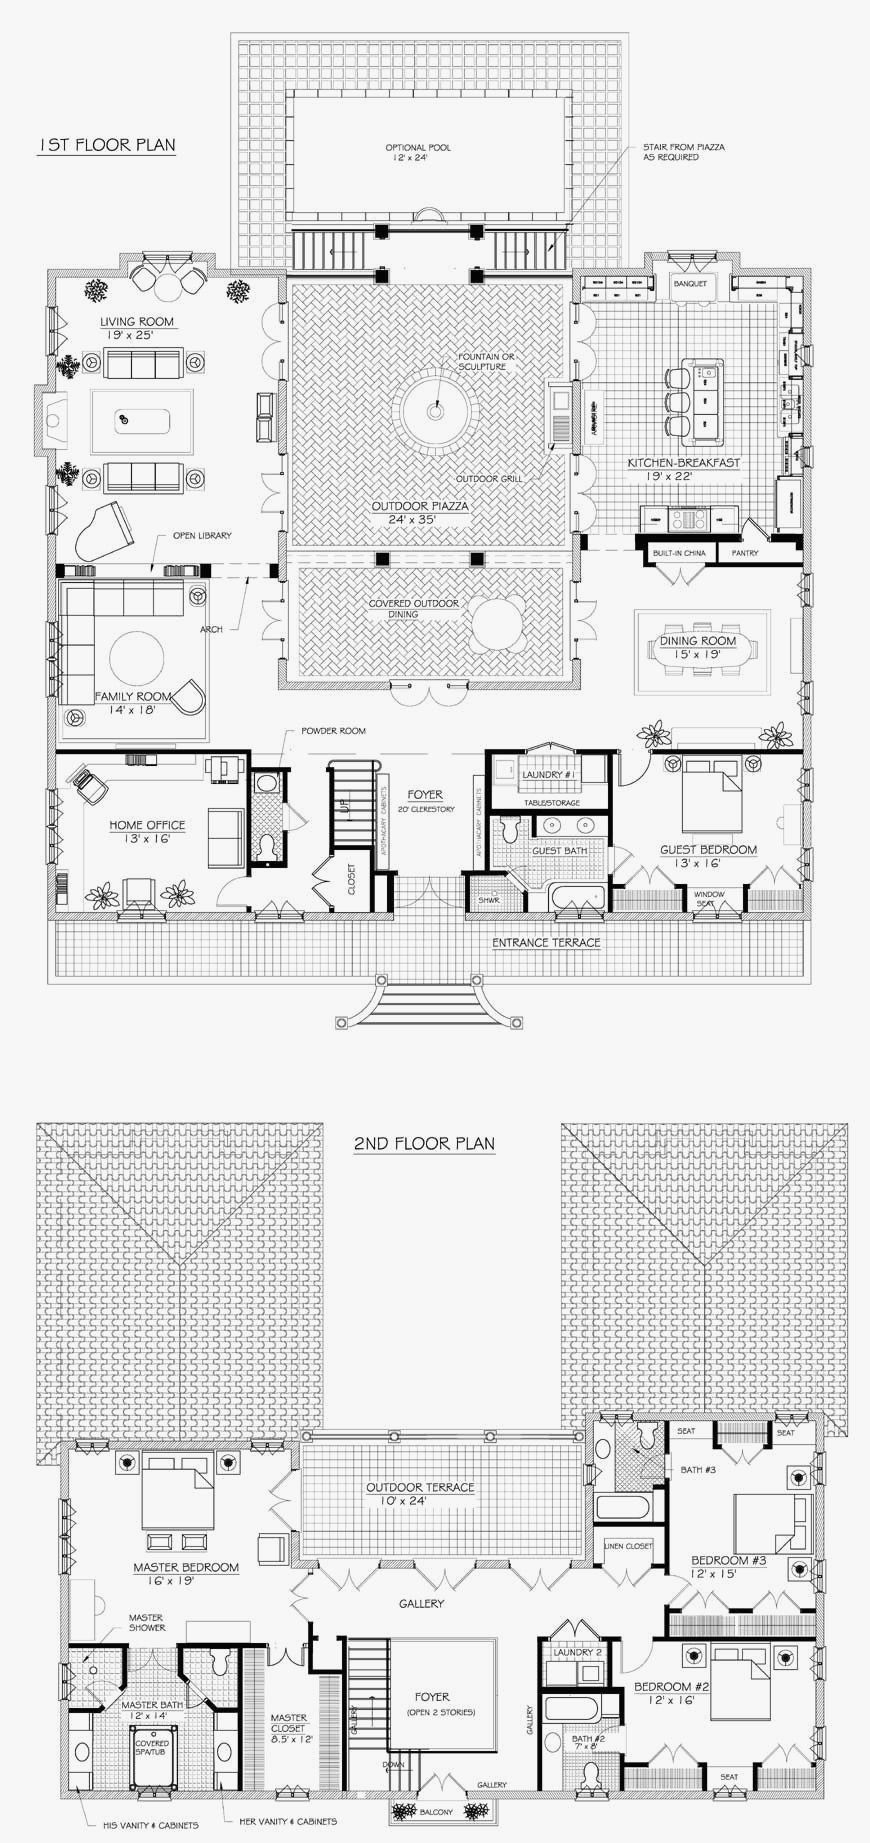 U Shaped House Plans With Courtyard Pool Best Of French House Plans On Pinterest French House Plans Courtyard House Plans Farmhouse Floor Plans